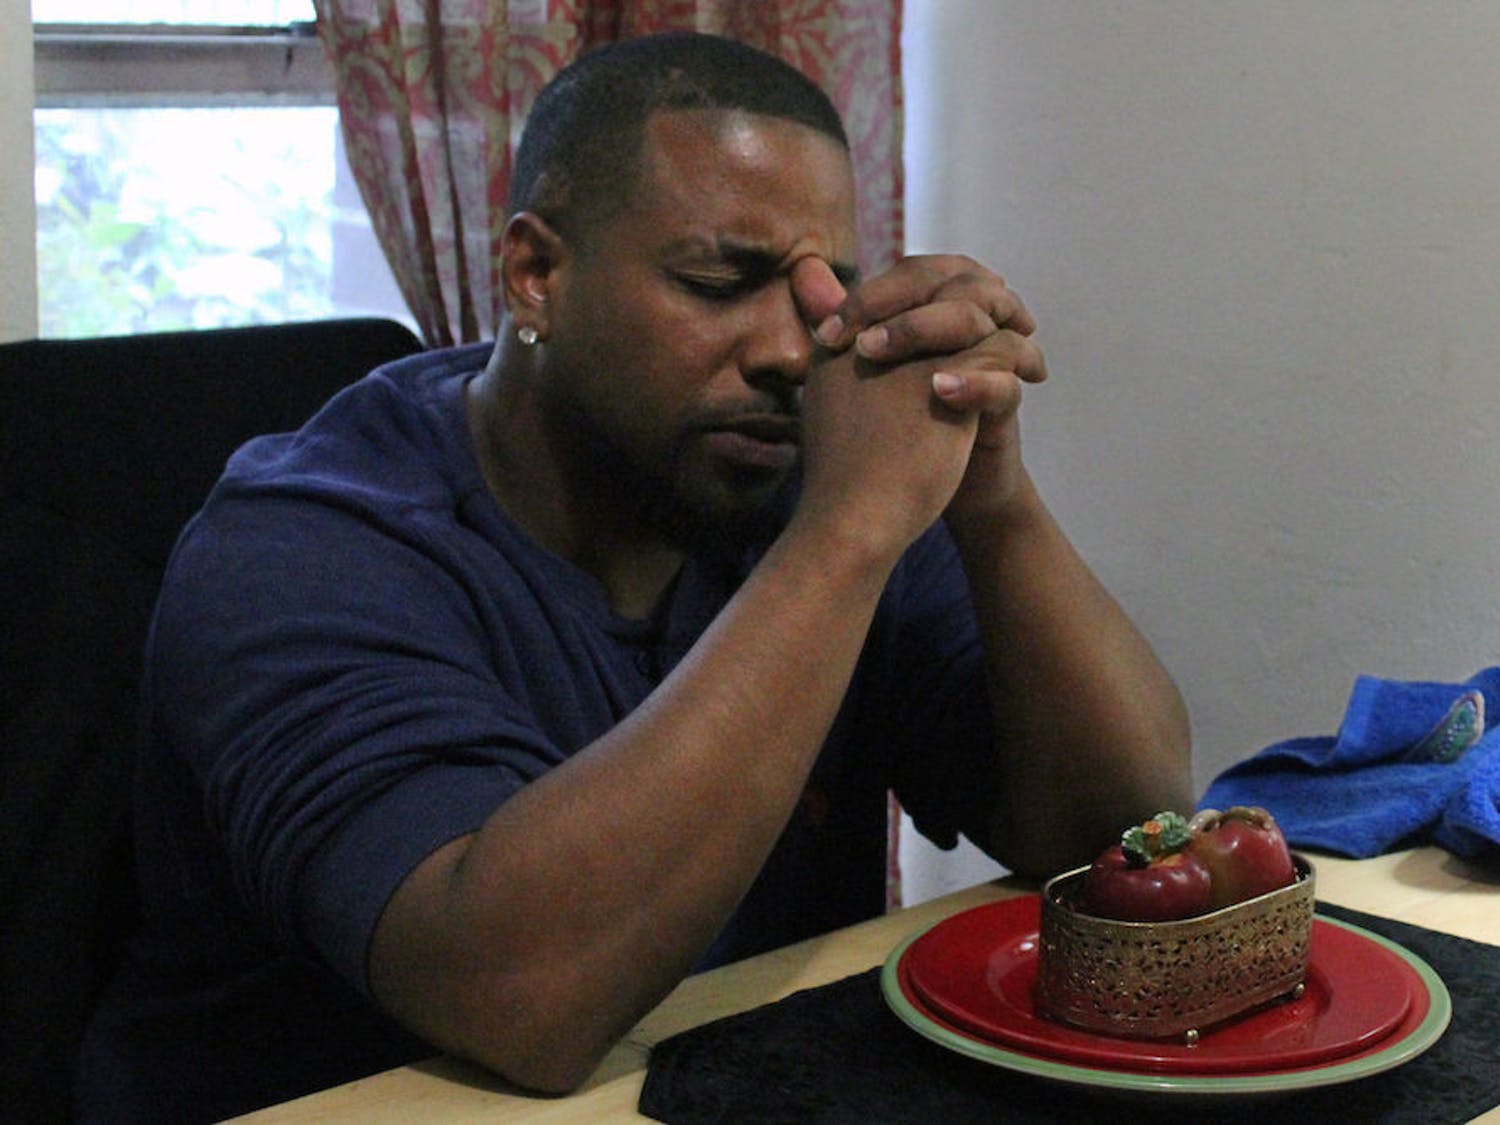 Michael Powers, 31, sits at his dining table where he is about to eat a baked chicken dinner for himself and his three sons. He lives in East Gainesville public housing, but dreams of moving to Savannah, Georgia.